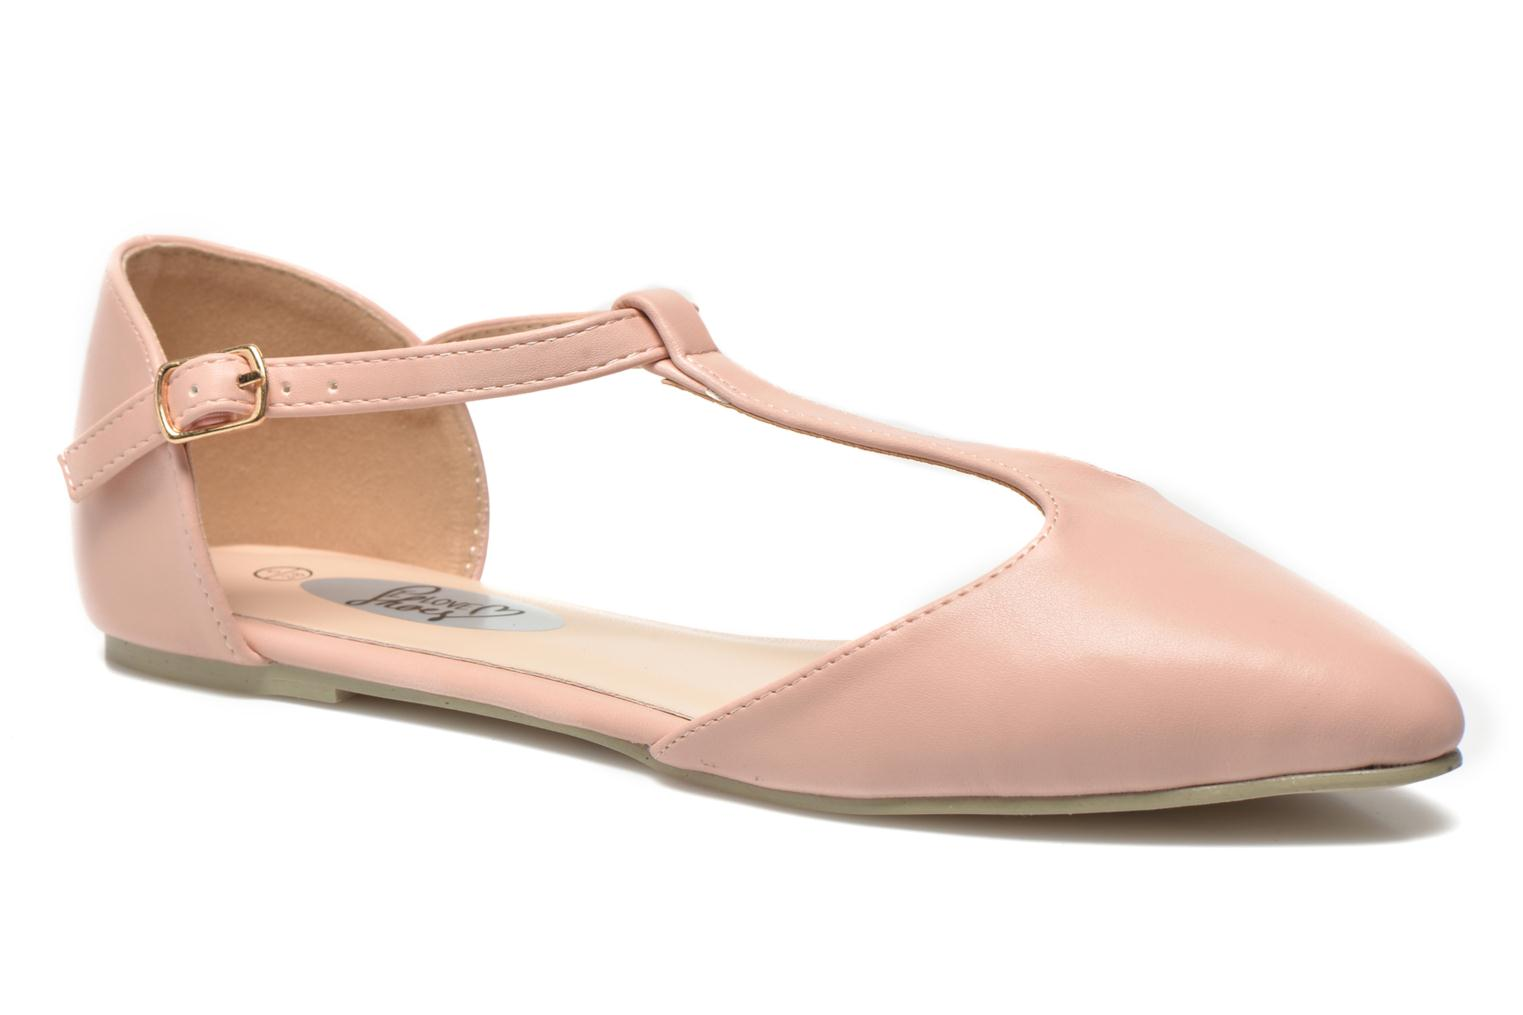 I Love Shoes - Damen - Kiba - Ballerinas - rosa H2I0r